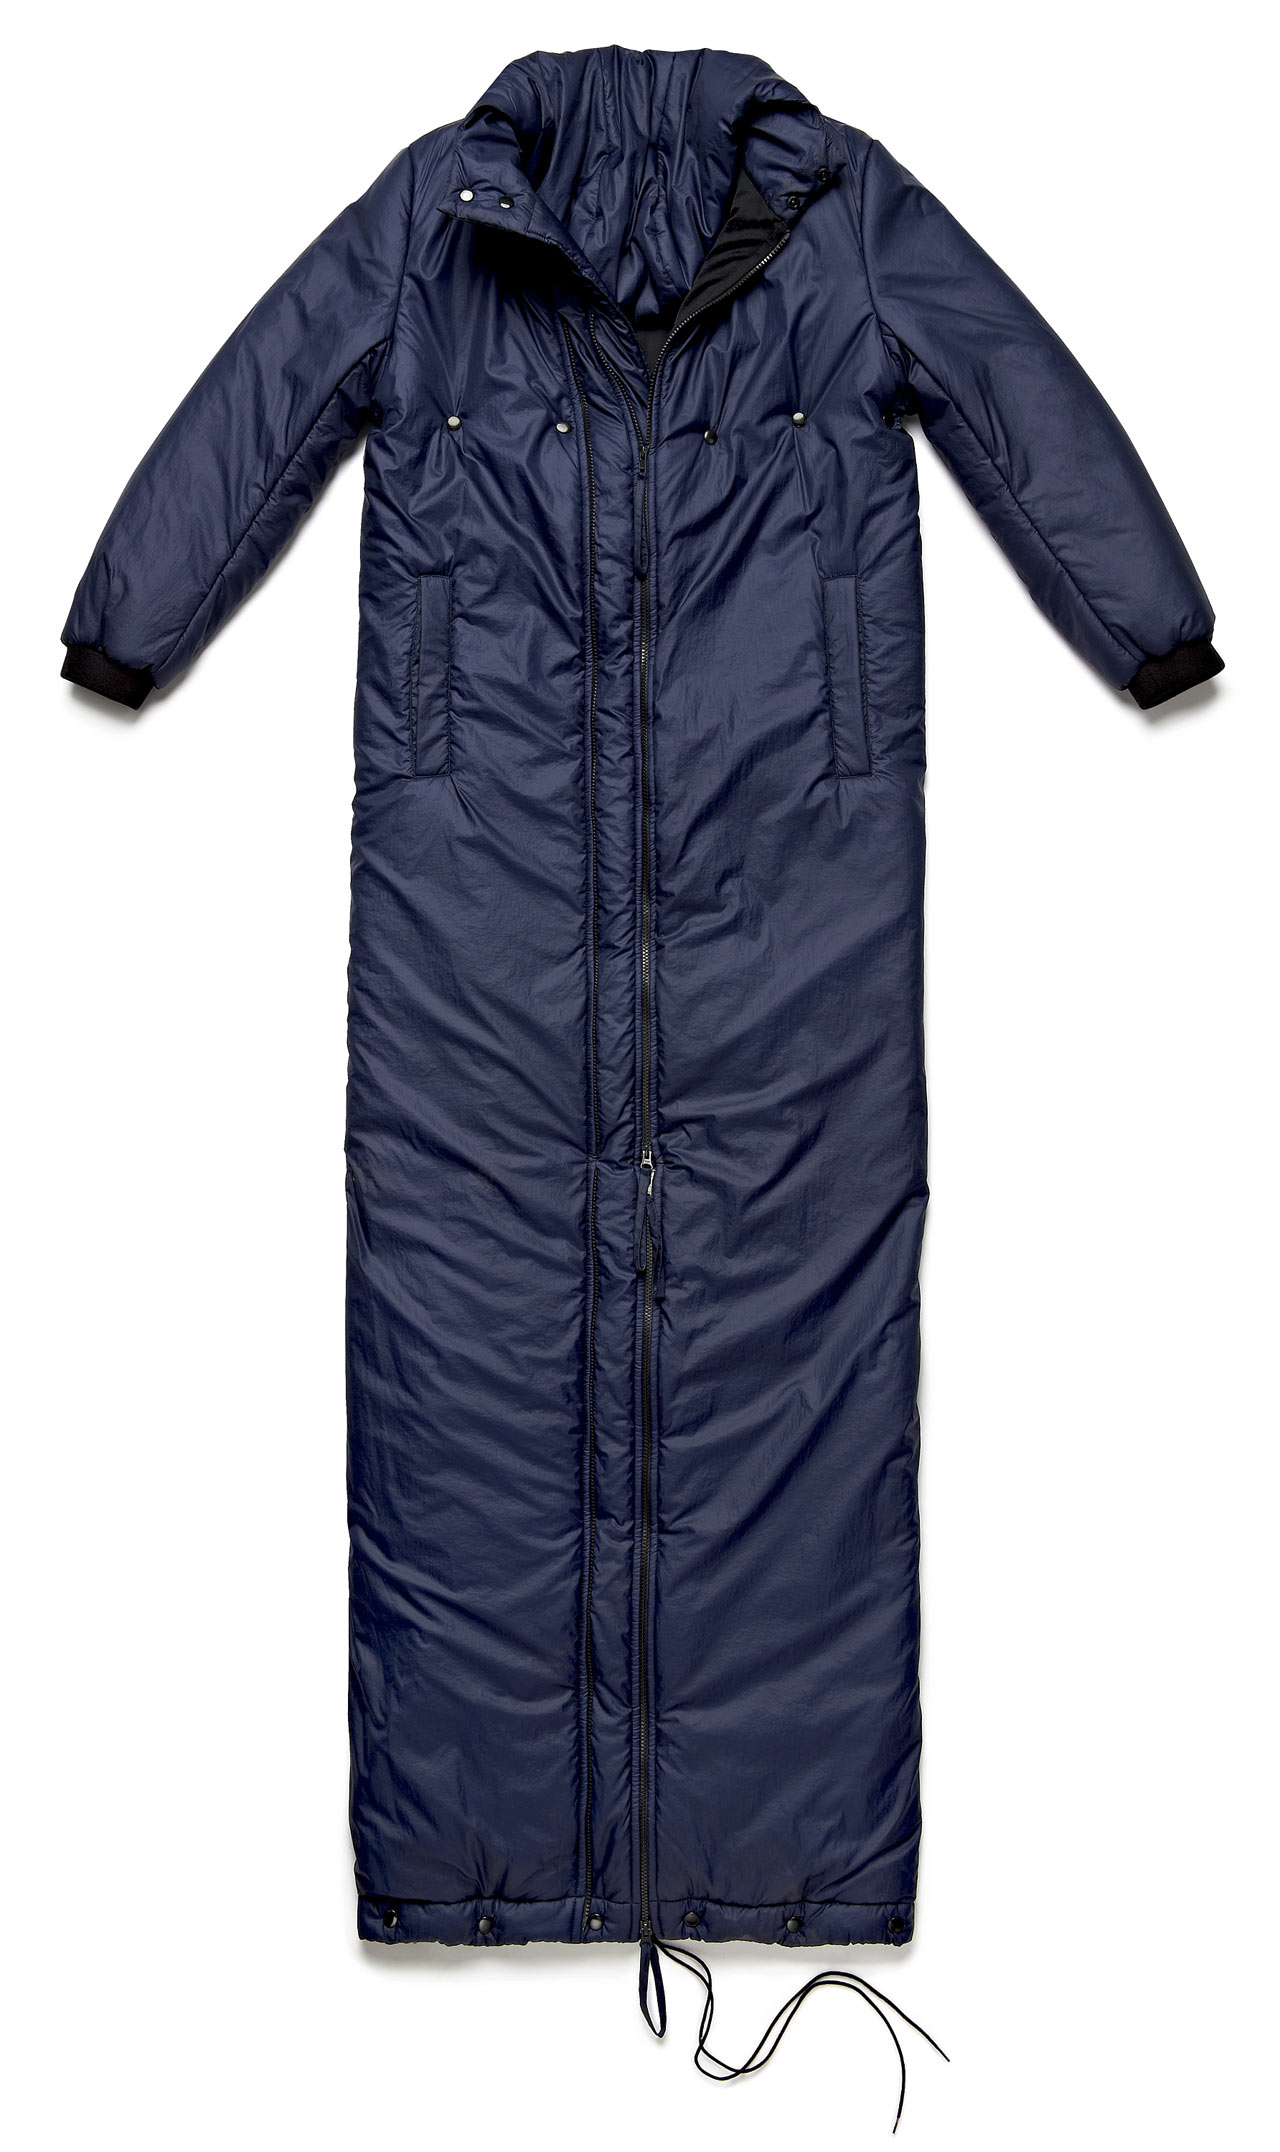 tom-dixon-adidas-sleeping-bag-coat